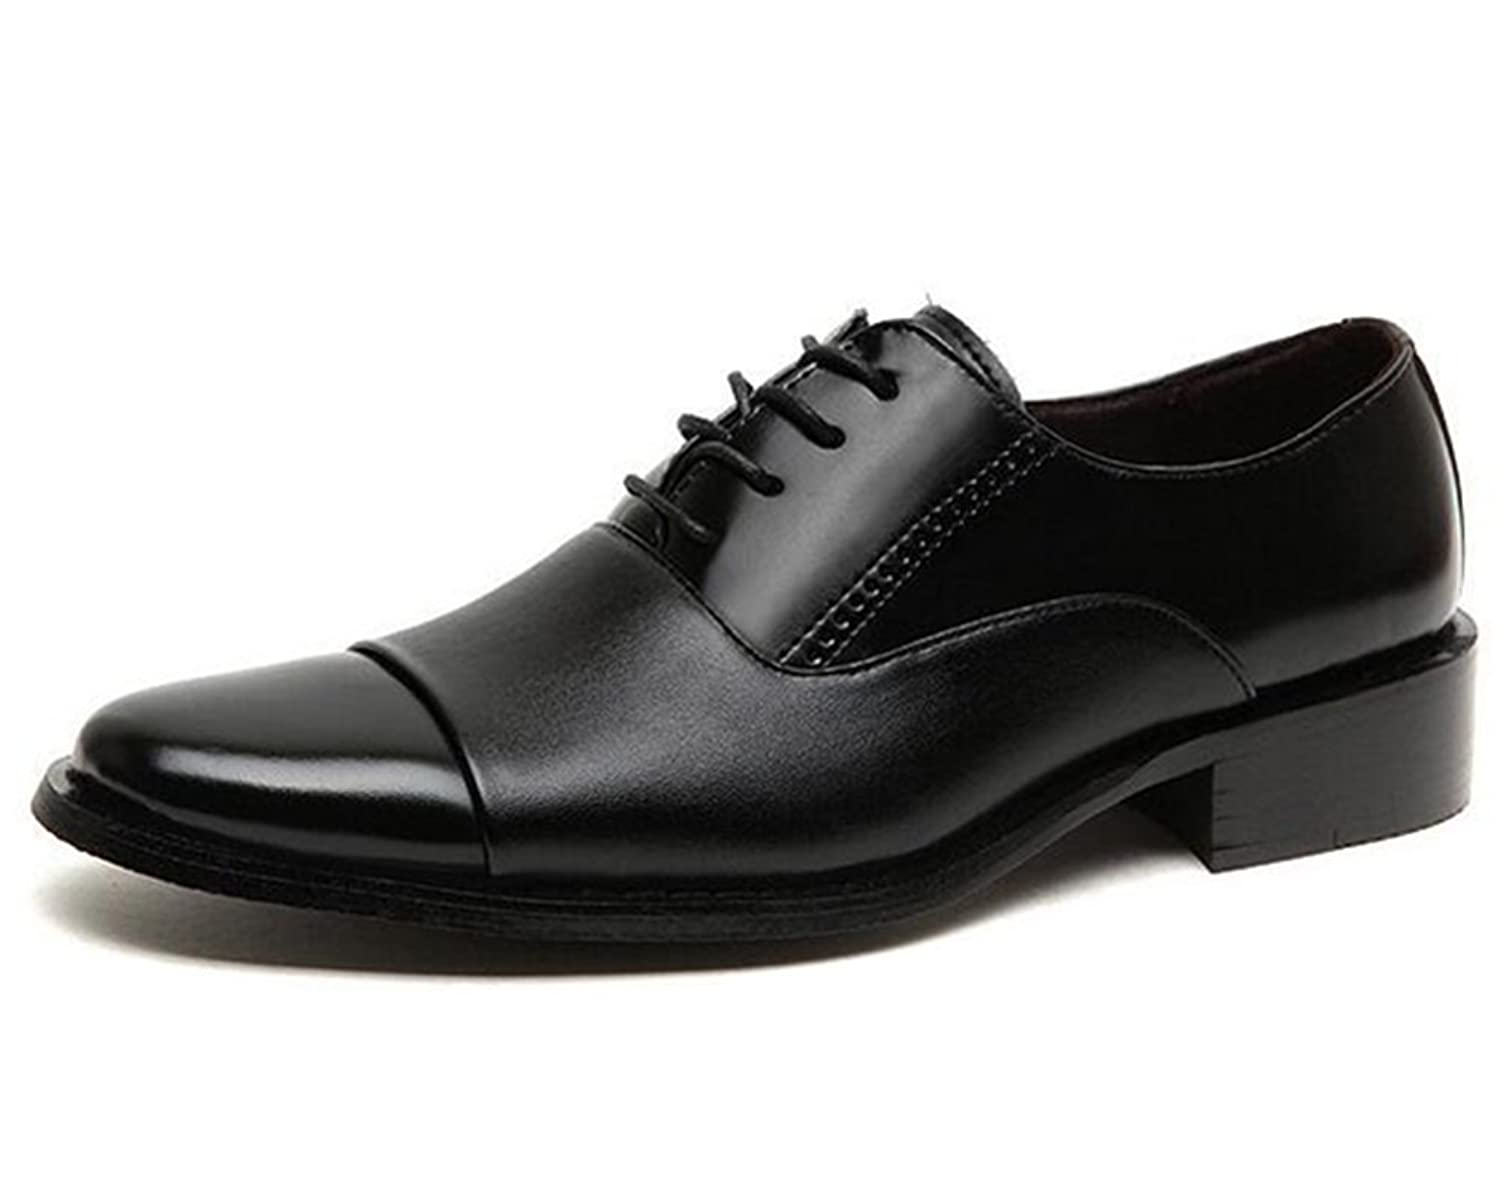 Nyngei Men's Casual Faux Leather Dress Outdoors Lace-up Wedding Oxford Shoes - Click Image to Close